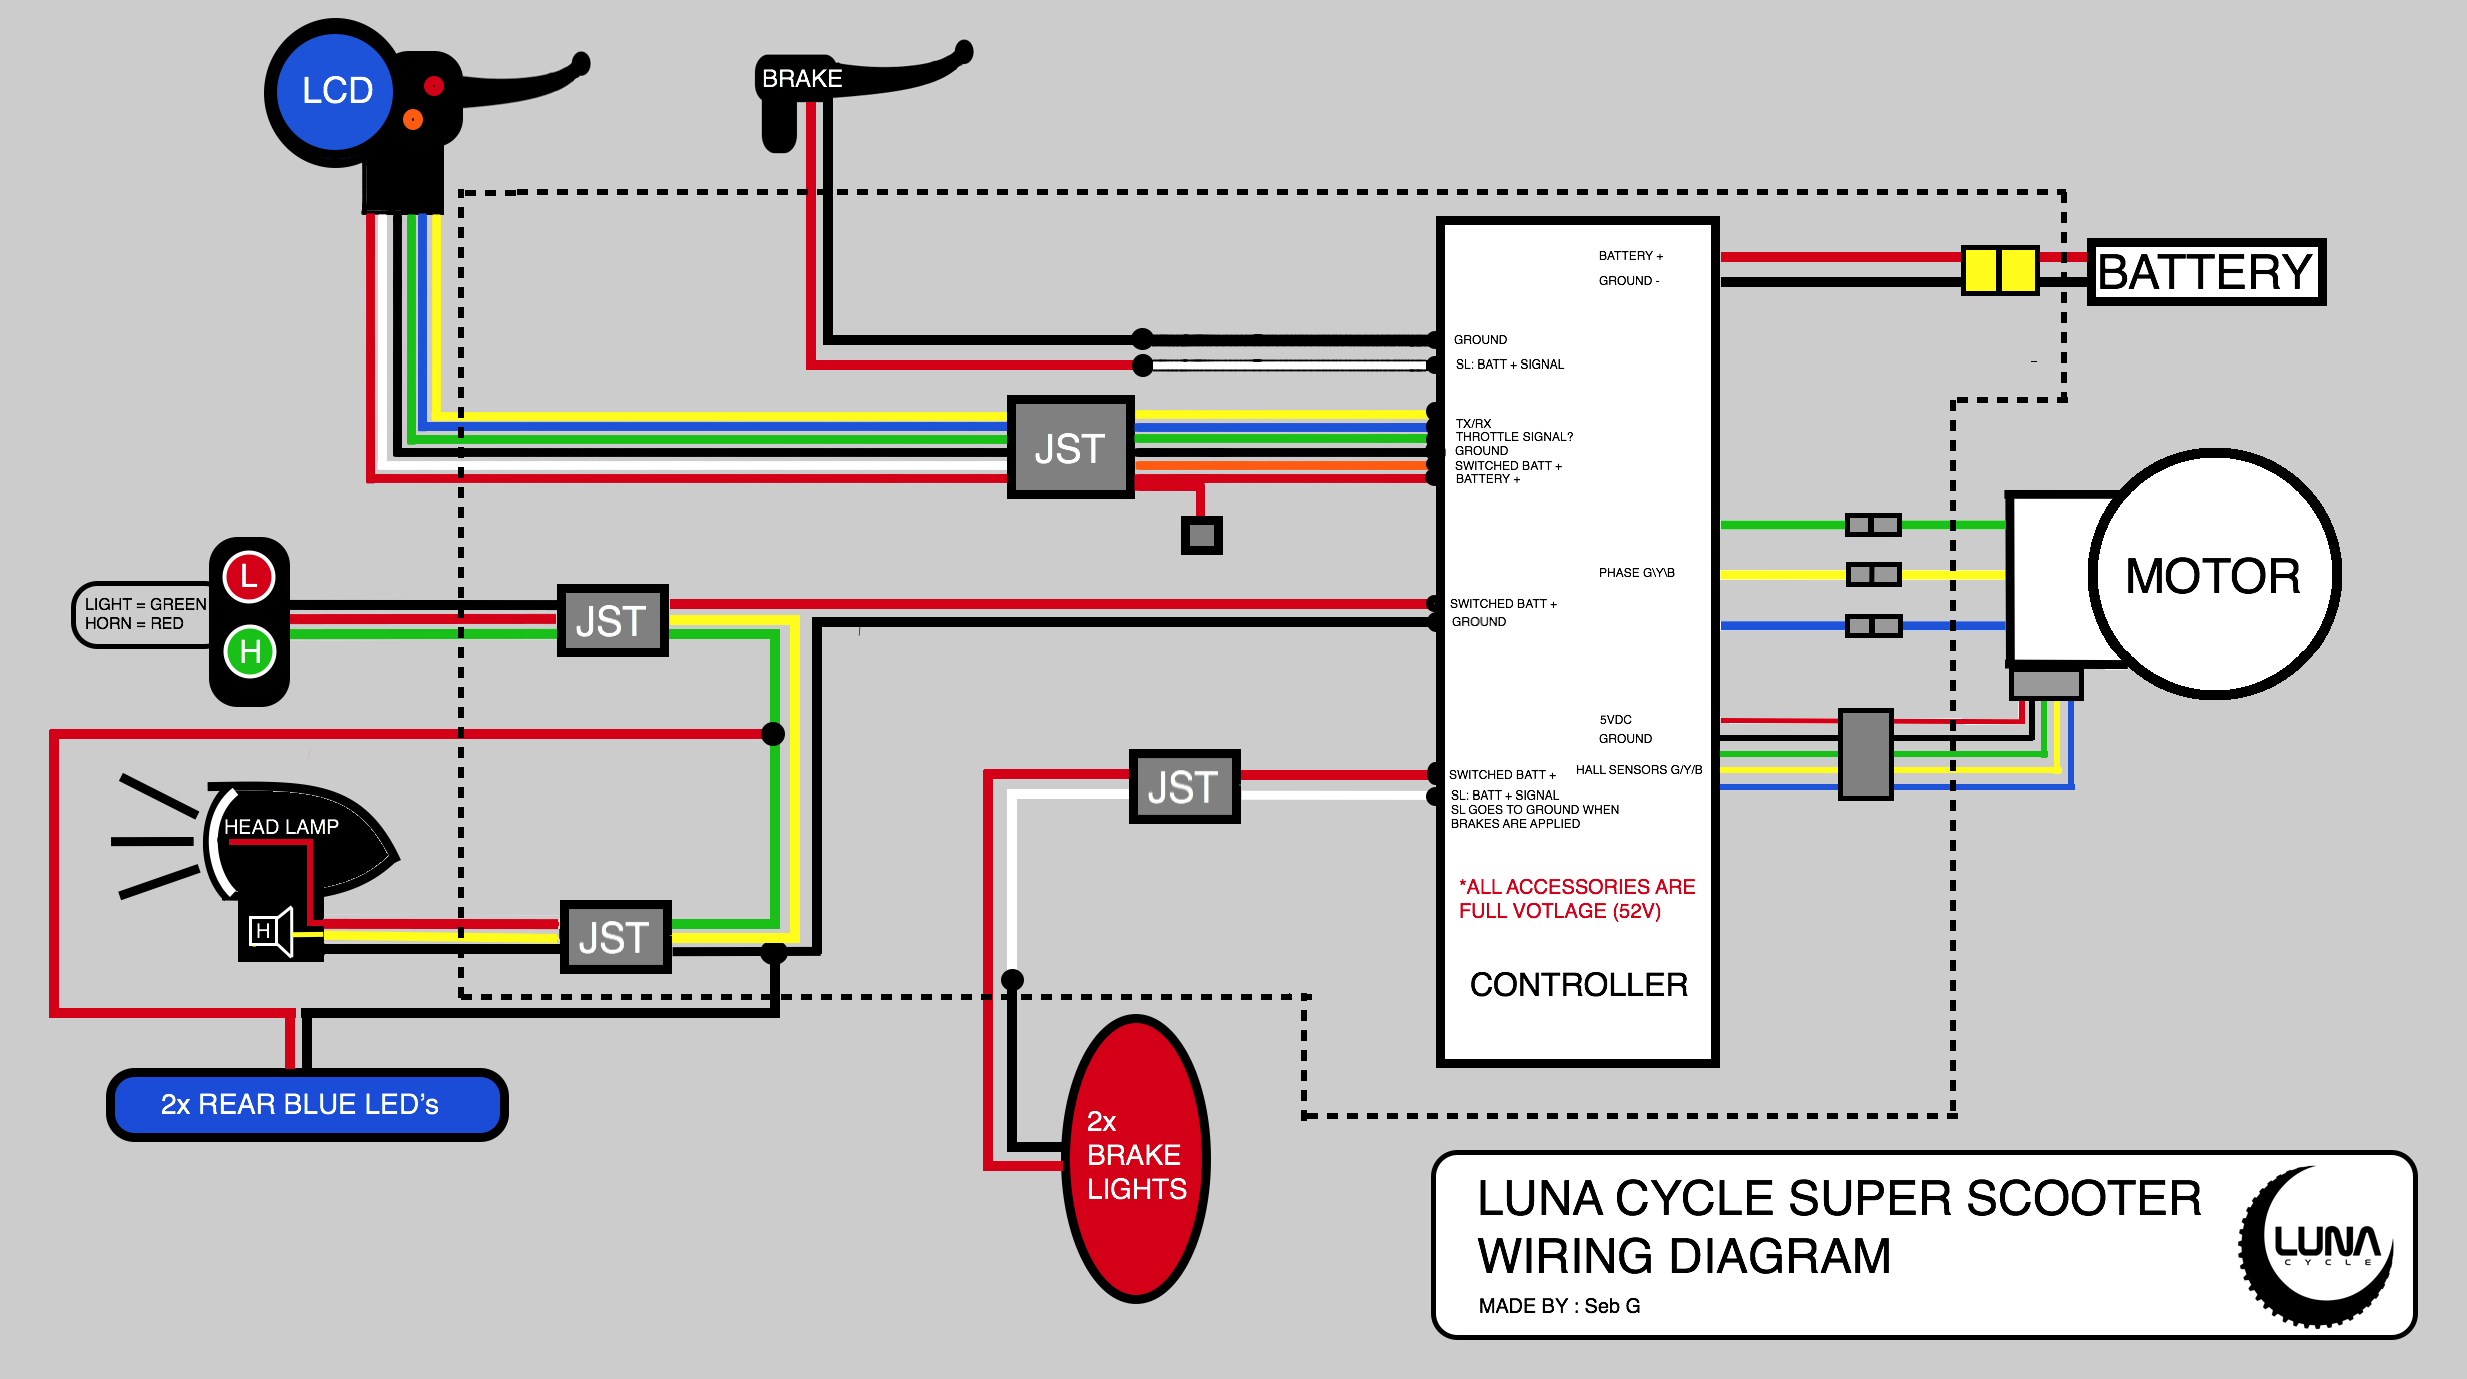 fetch?id=50713&d=1525055827 Quasar Electric Scooter Wiring Diagram on